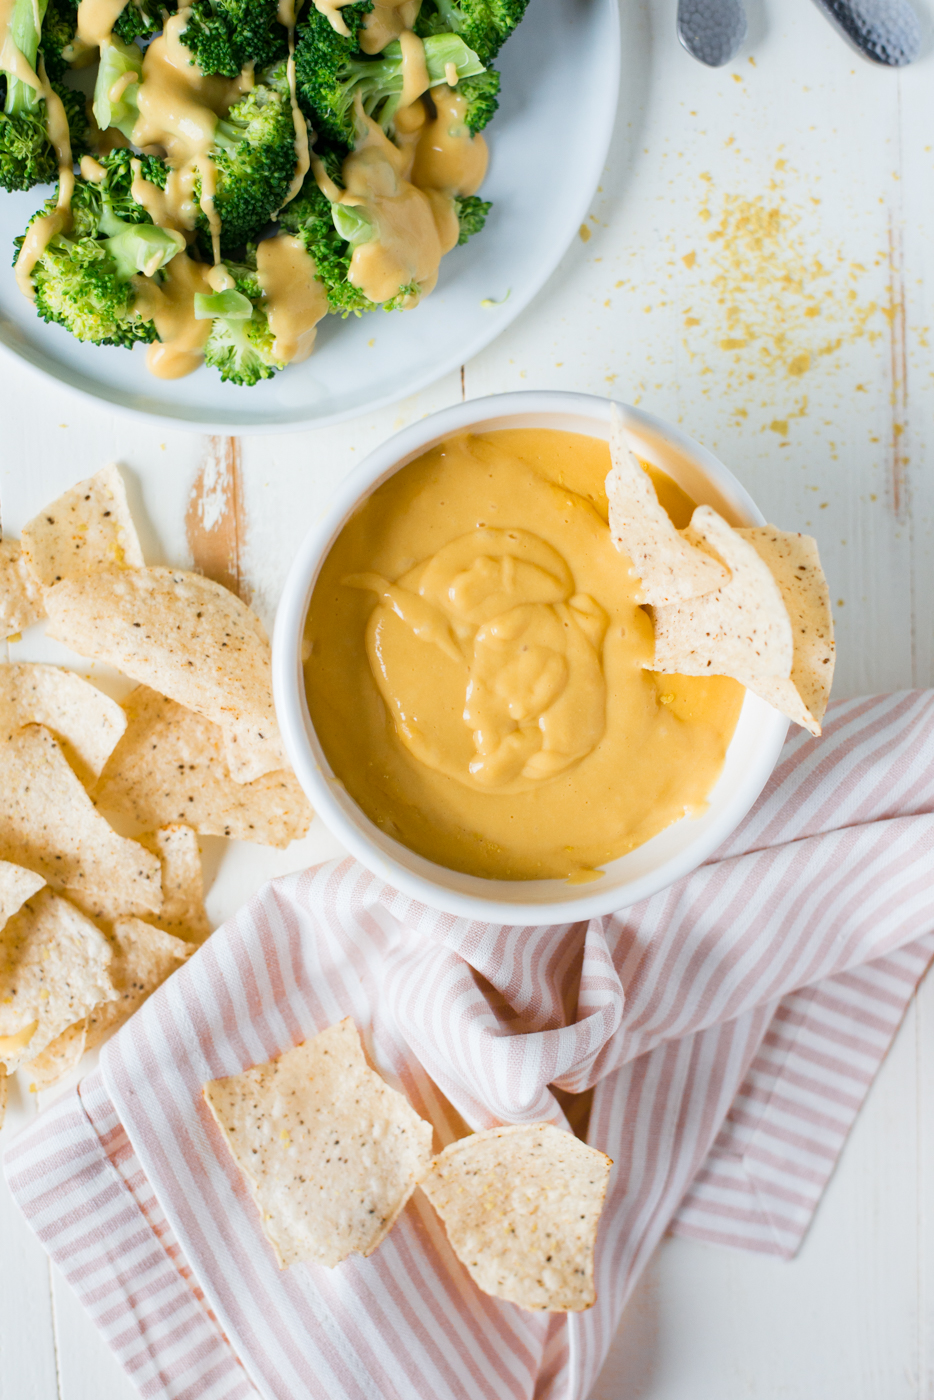 Creamy, dreamy, and totally delicious, Instant Pot Real Deal Real Food Dairy-Free Cheese Sauce is an amazing alternative to traditional cheese sauce, and is super easy to whip up. paleo, vegan, dairy-free, gluten-free